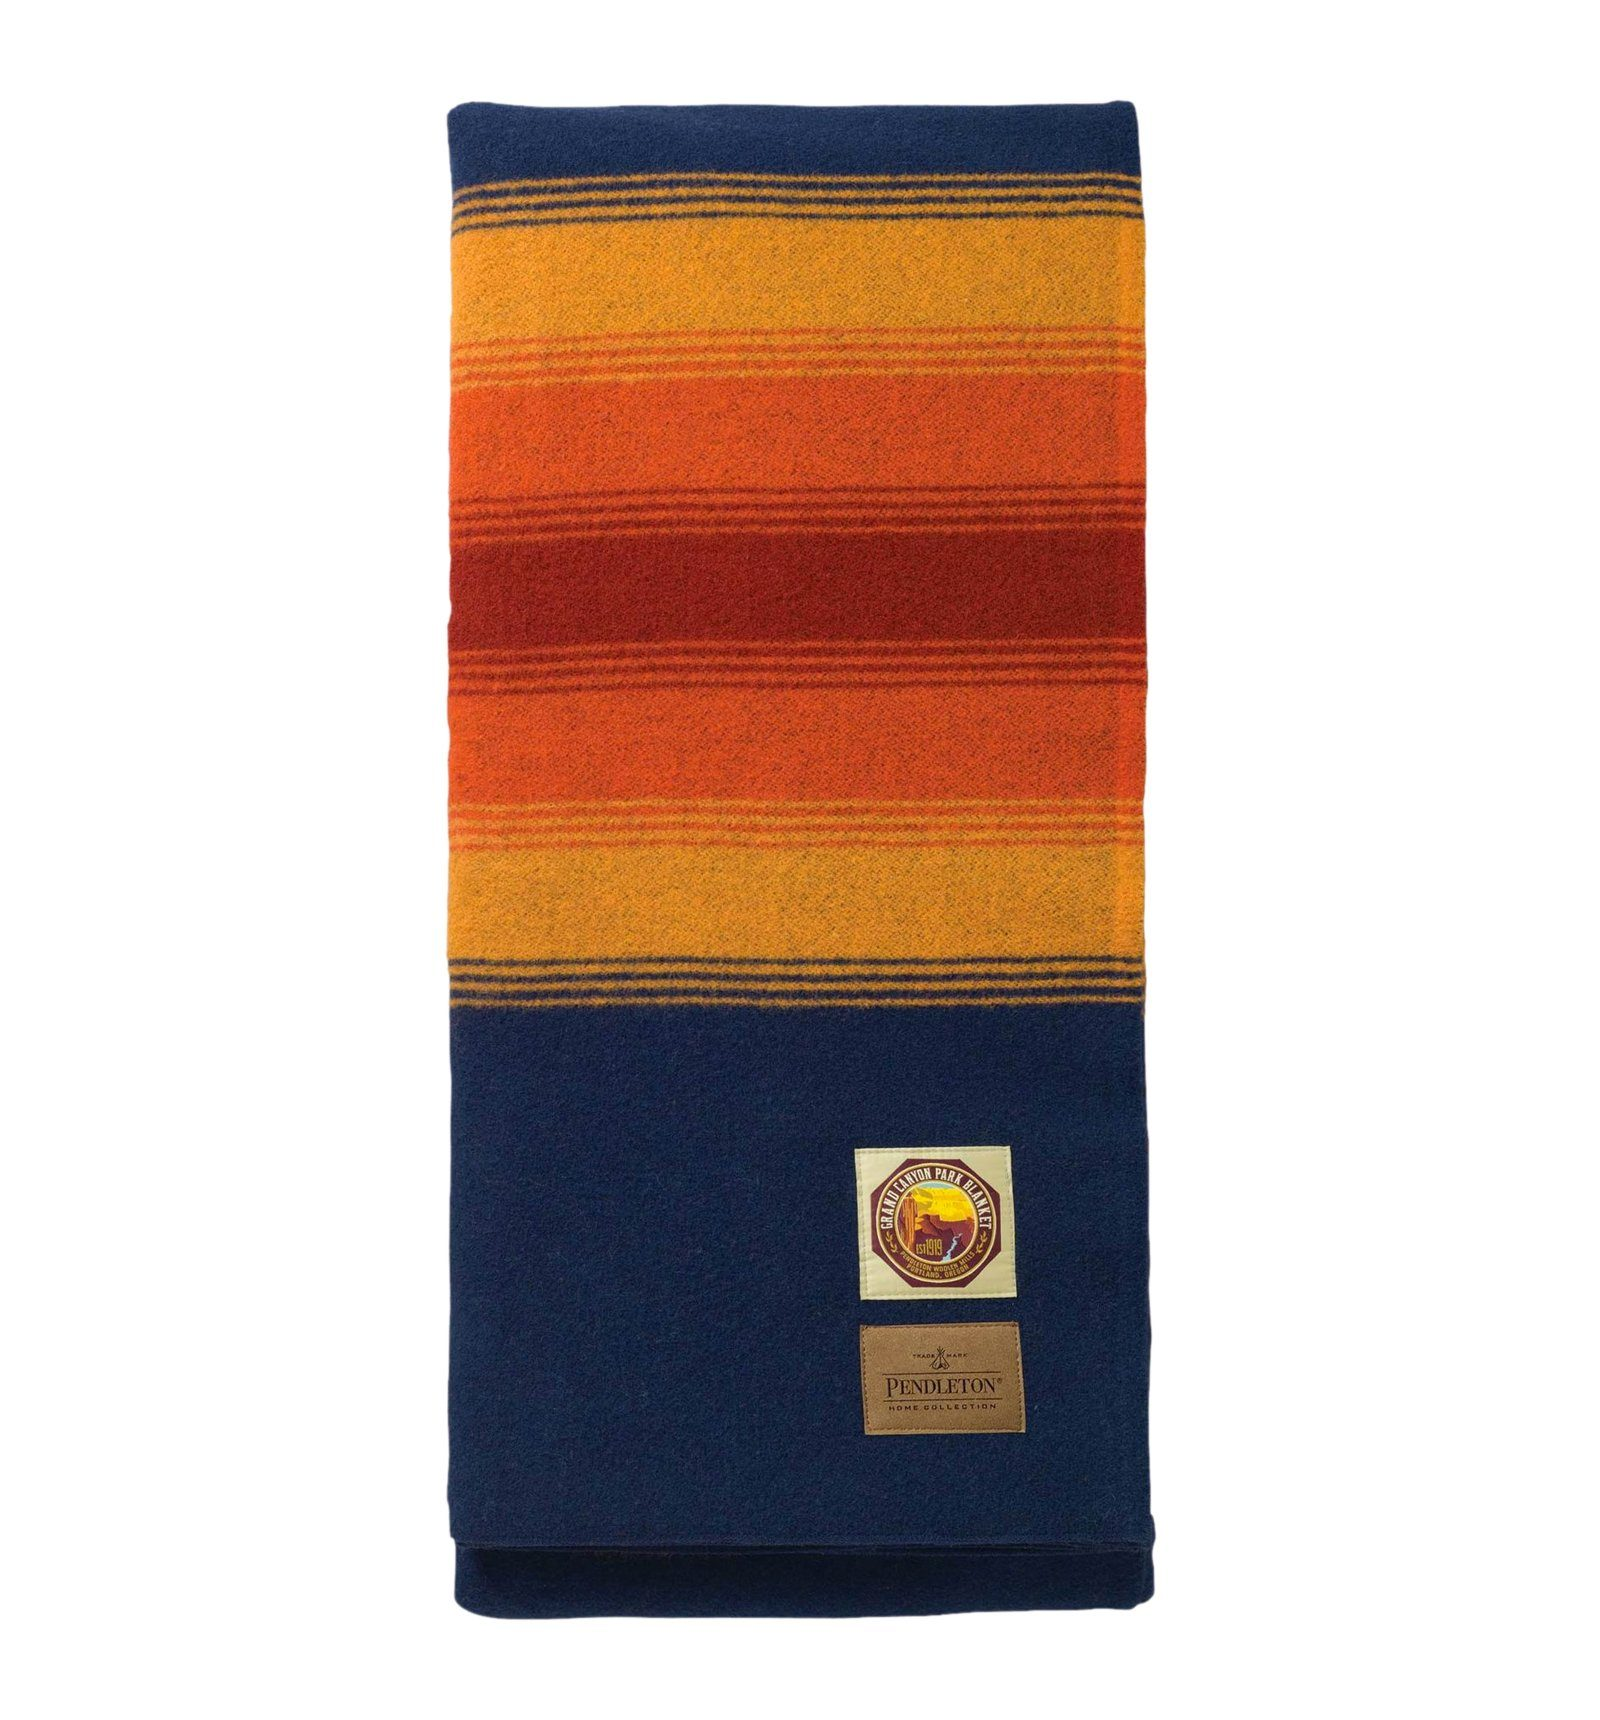 Pendleton Woolen Mills National Park Full Blanket - Grand Canyon - Home Essentials - Iron and Resin